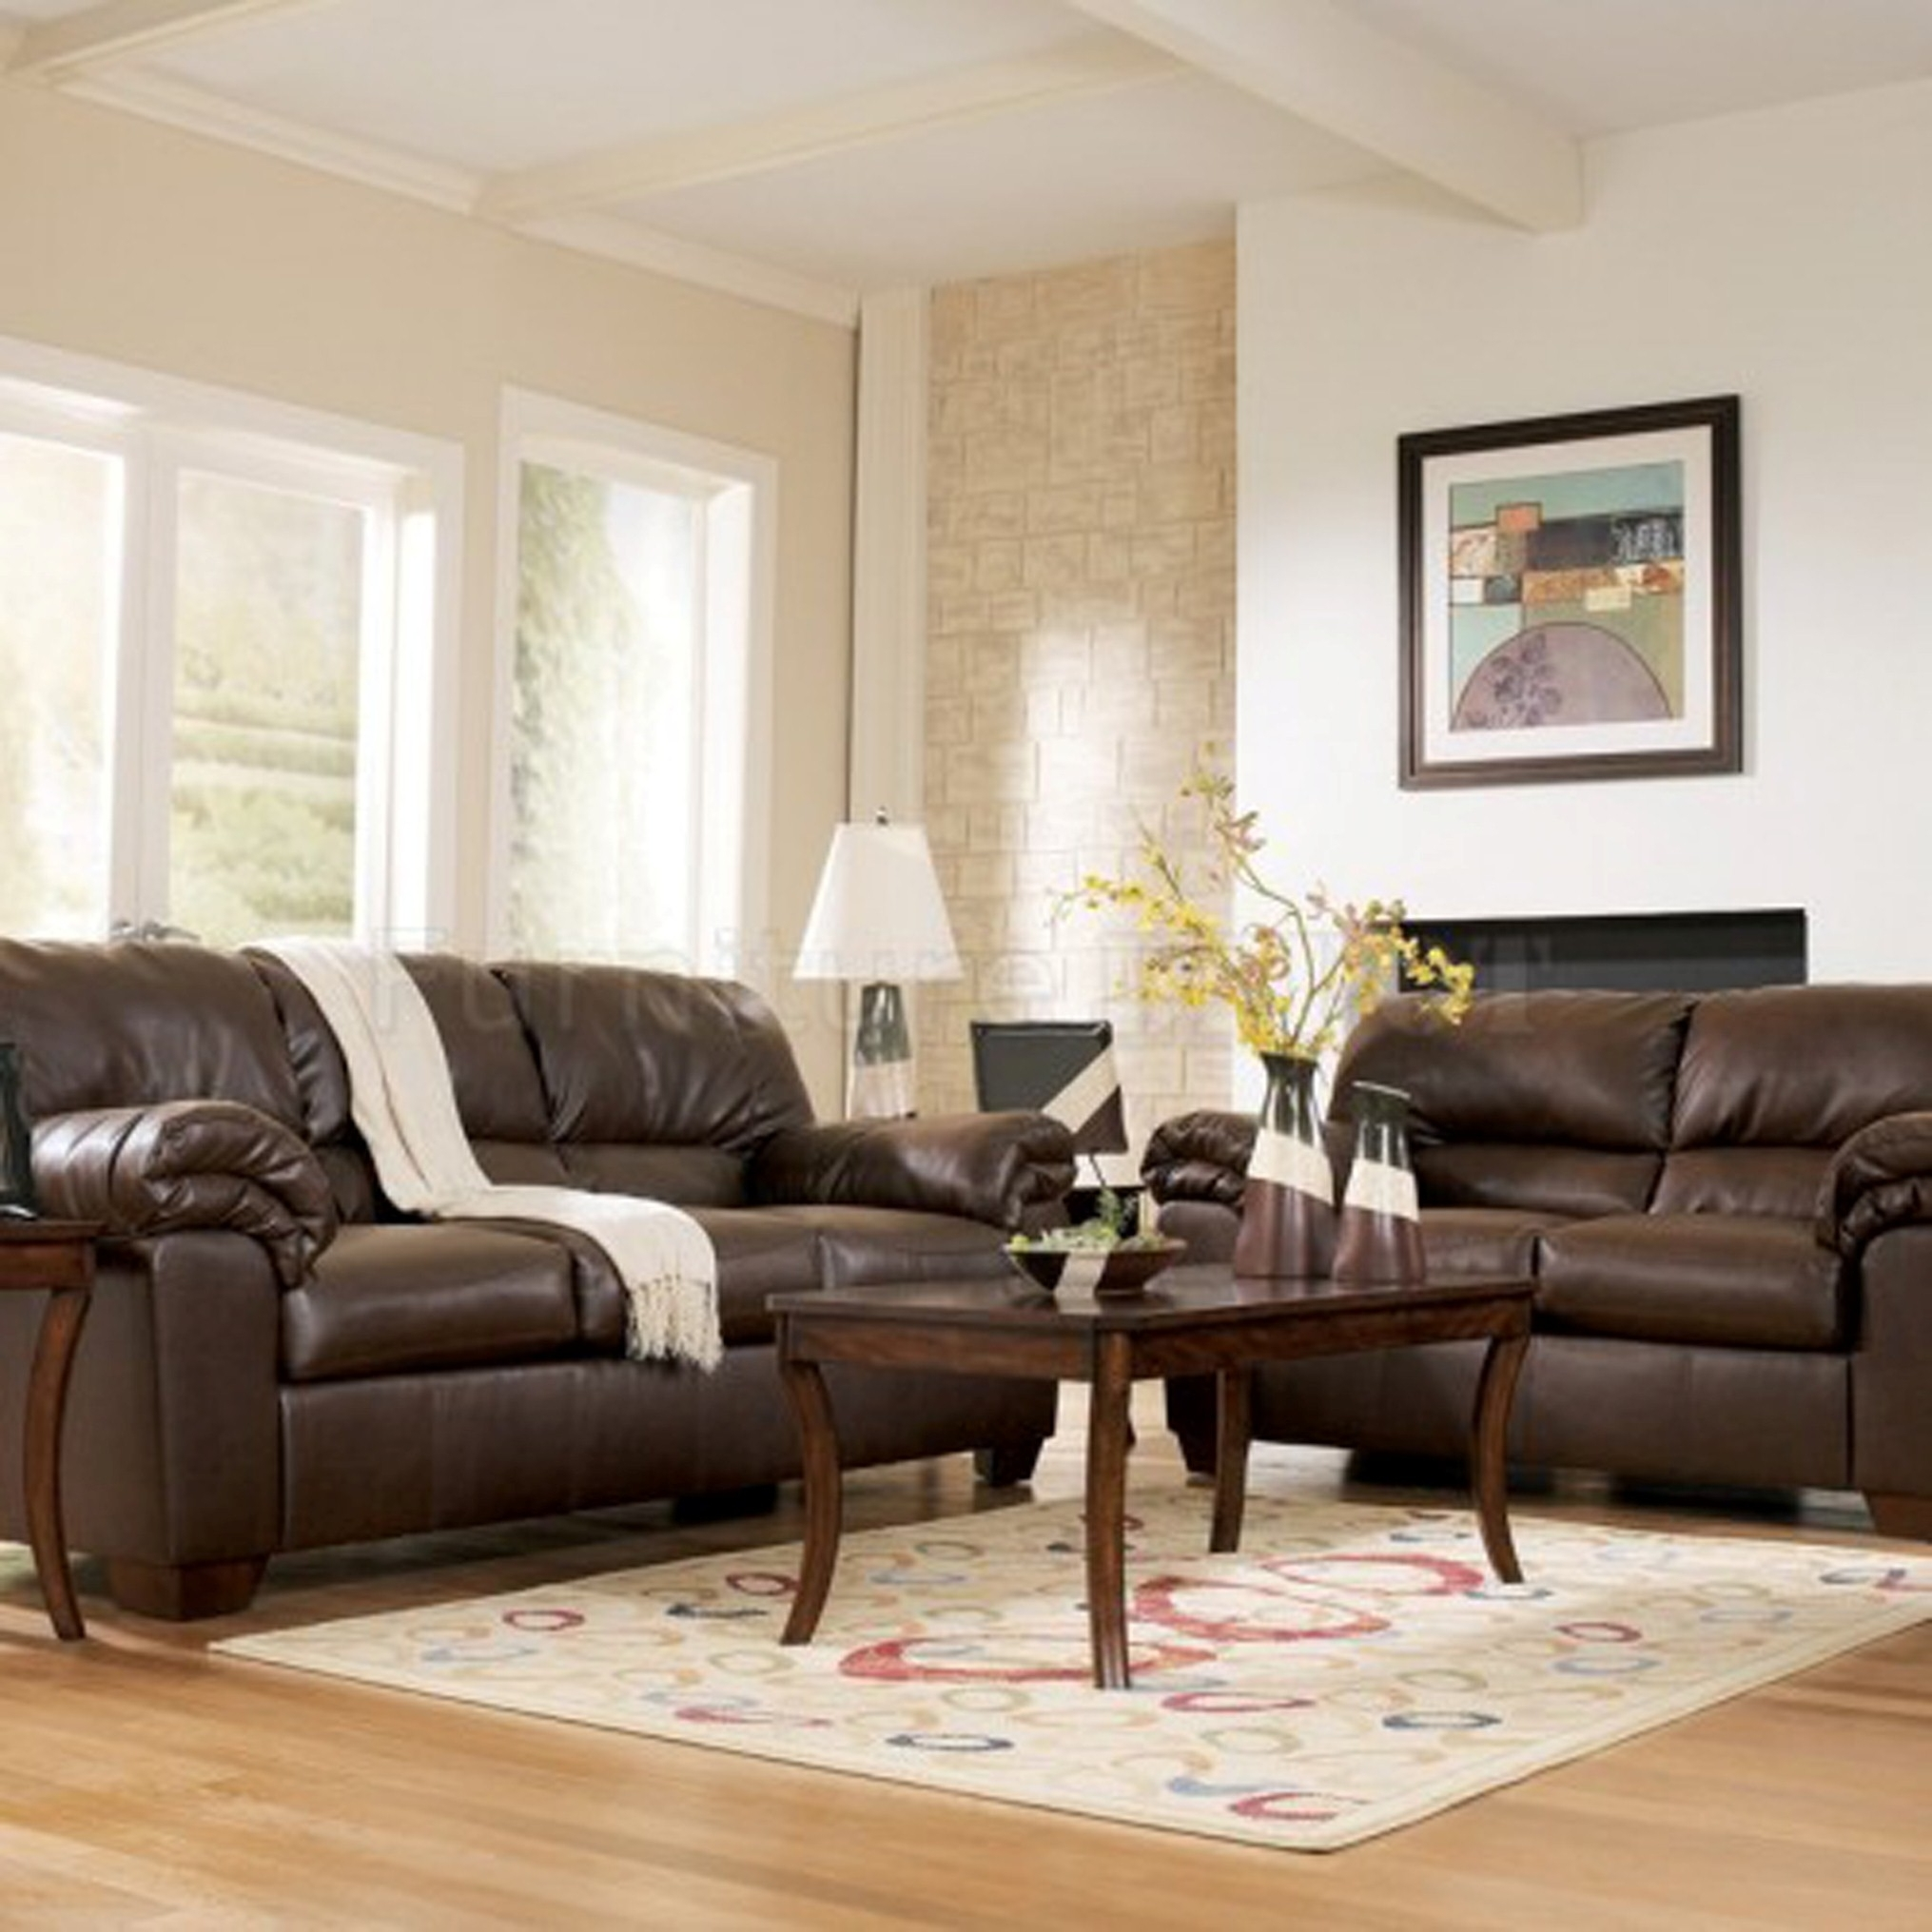 Living room ideas brown leather sofa for Living room designs brown furniture